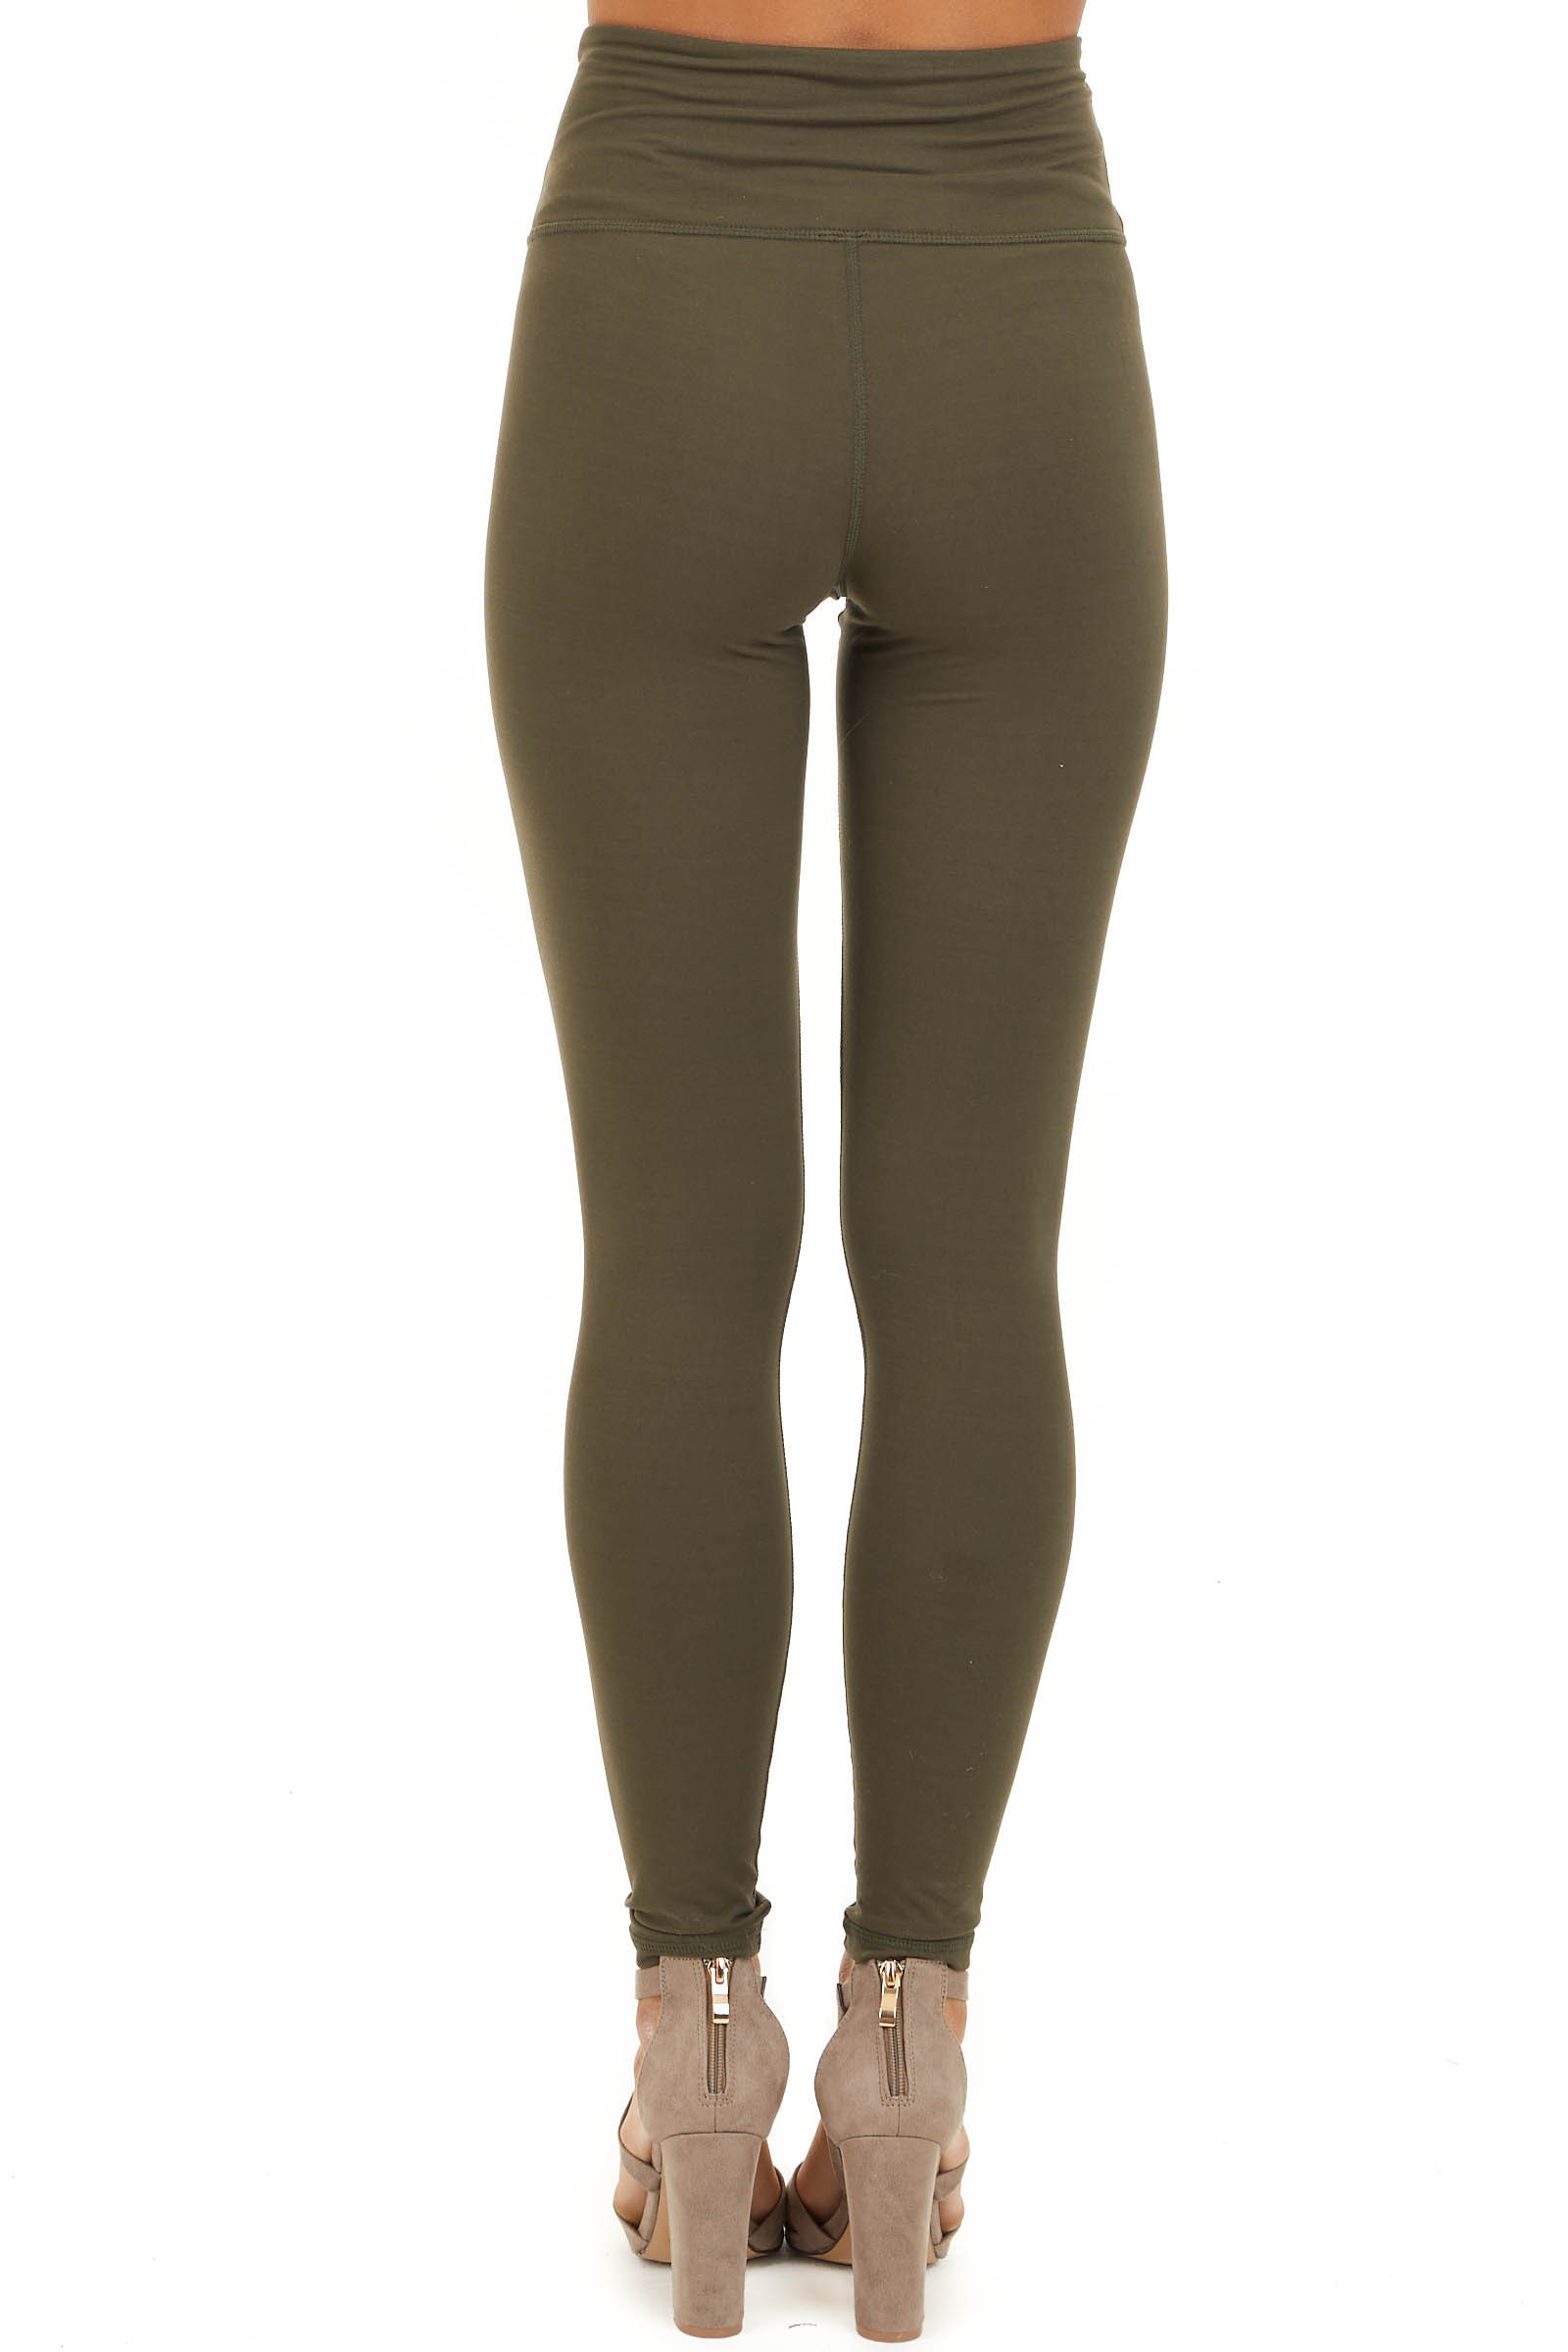 Olive Solid Leggings with Laser Cutout Details back view